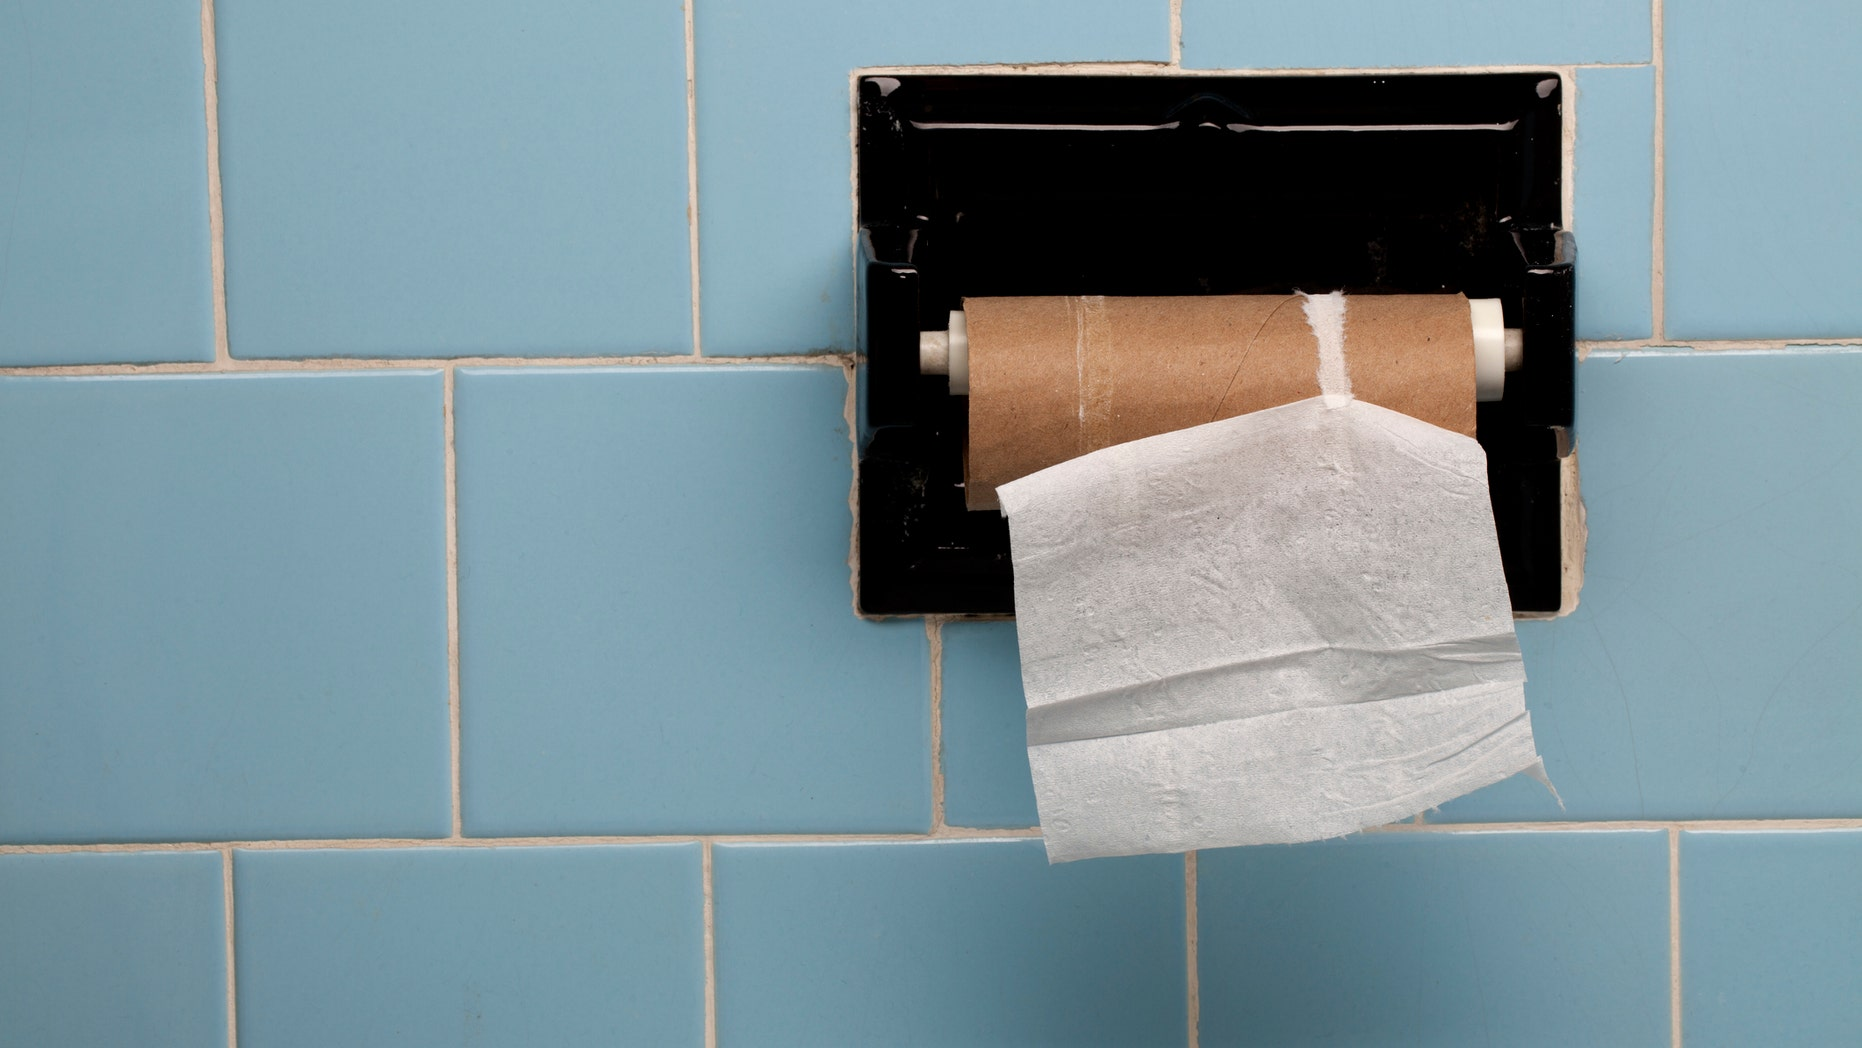 There may be good news for anyone afraid of running out of toilet paper.